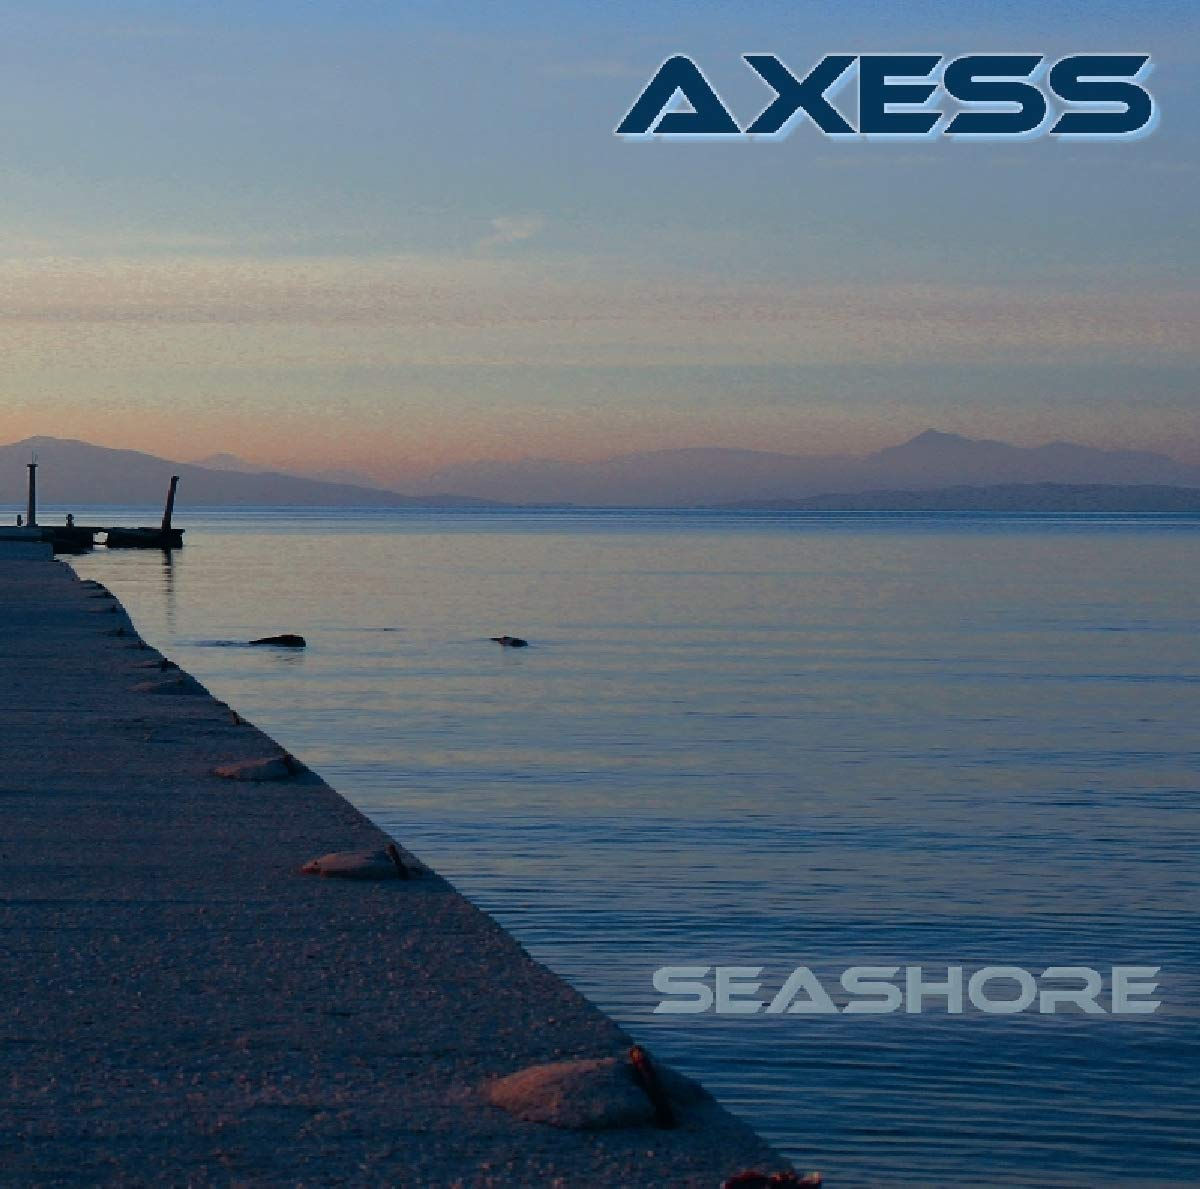 Seashore Cover art